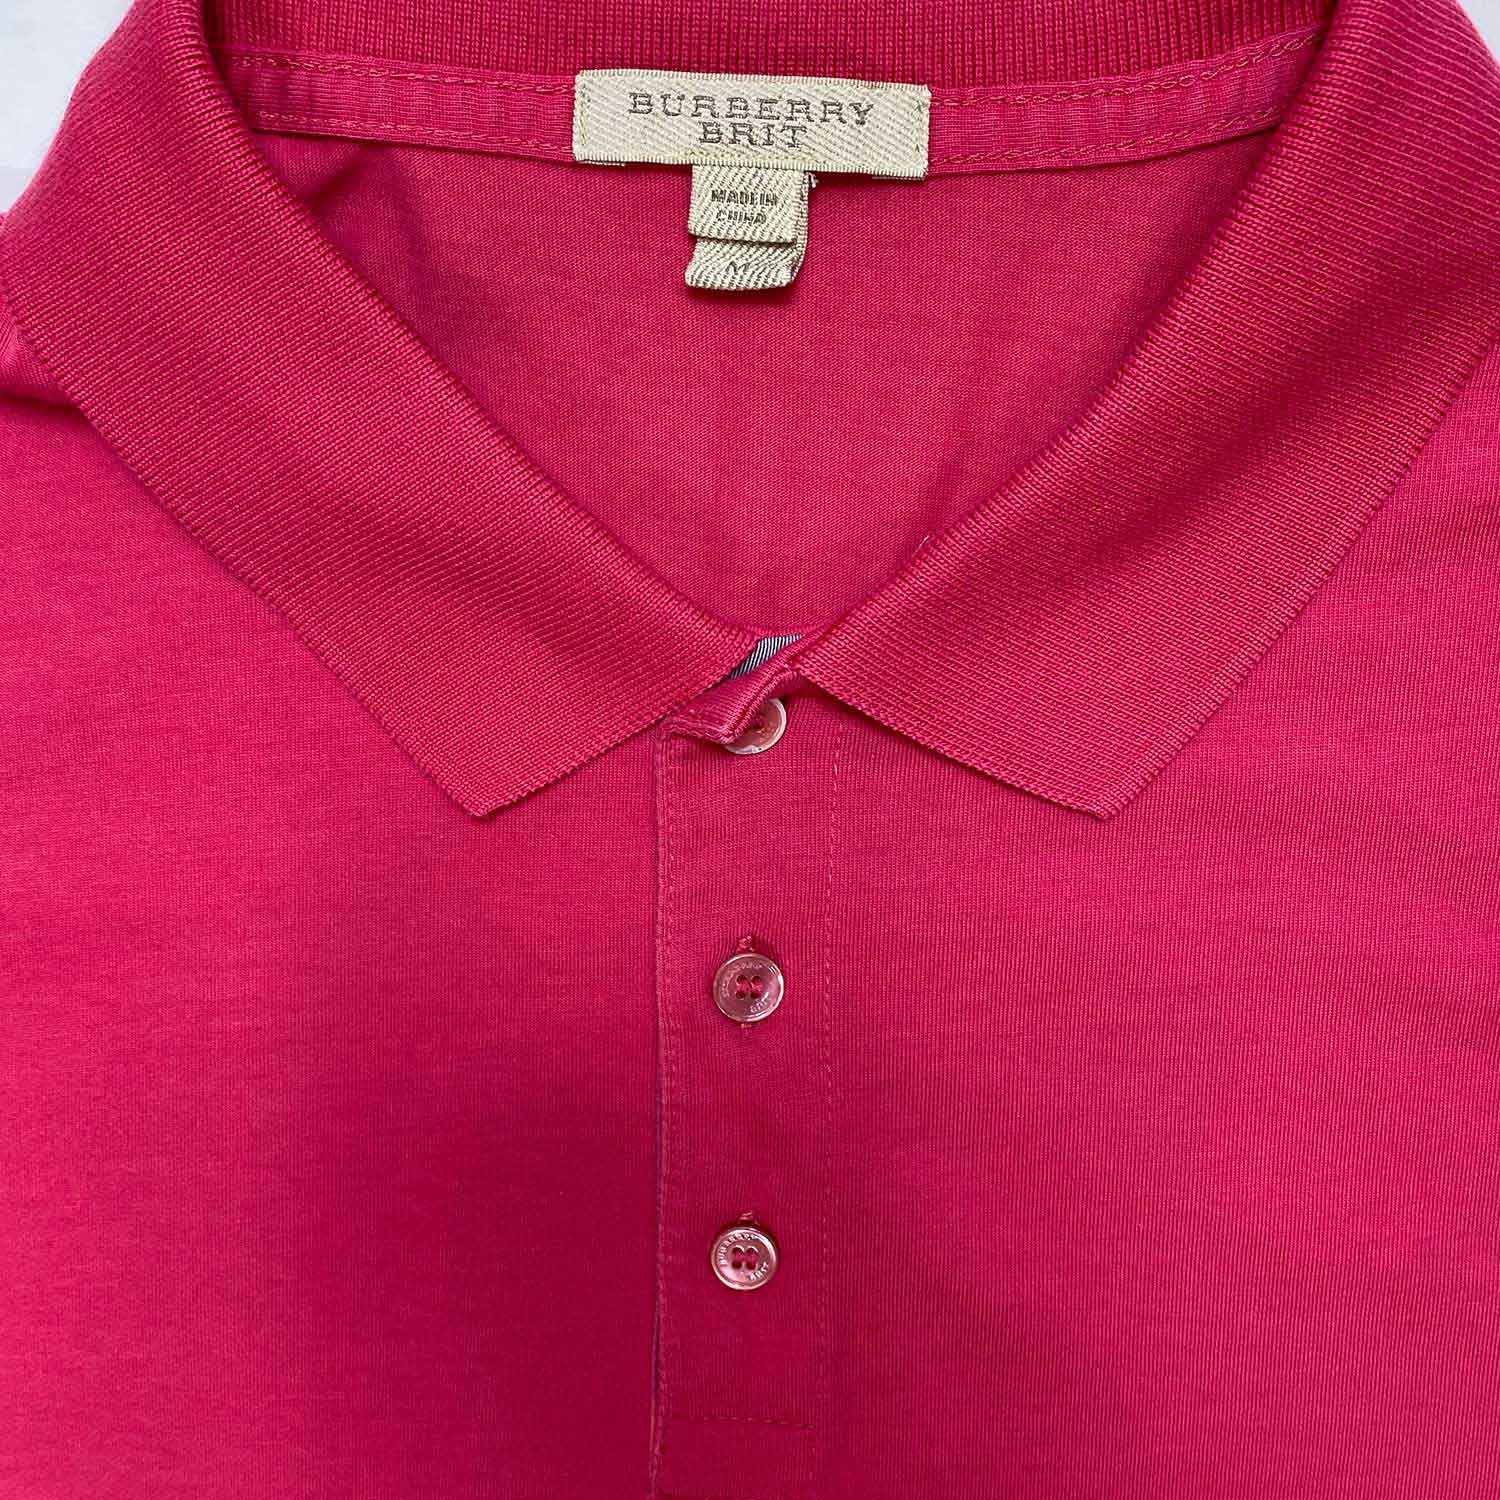 Camisa Polo Burberry Rosa